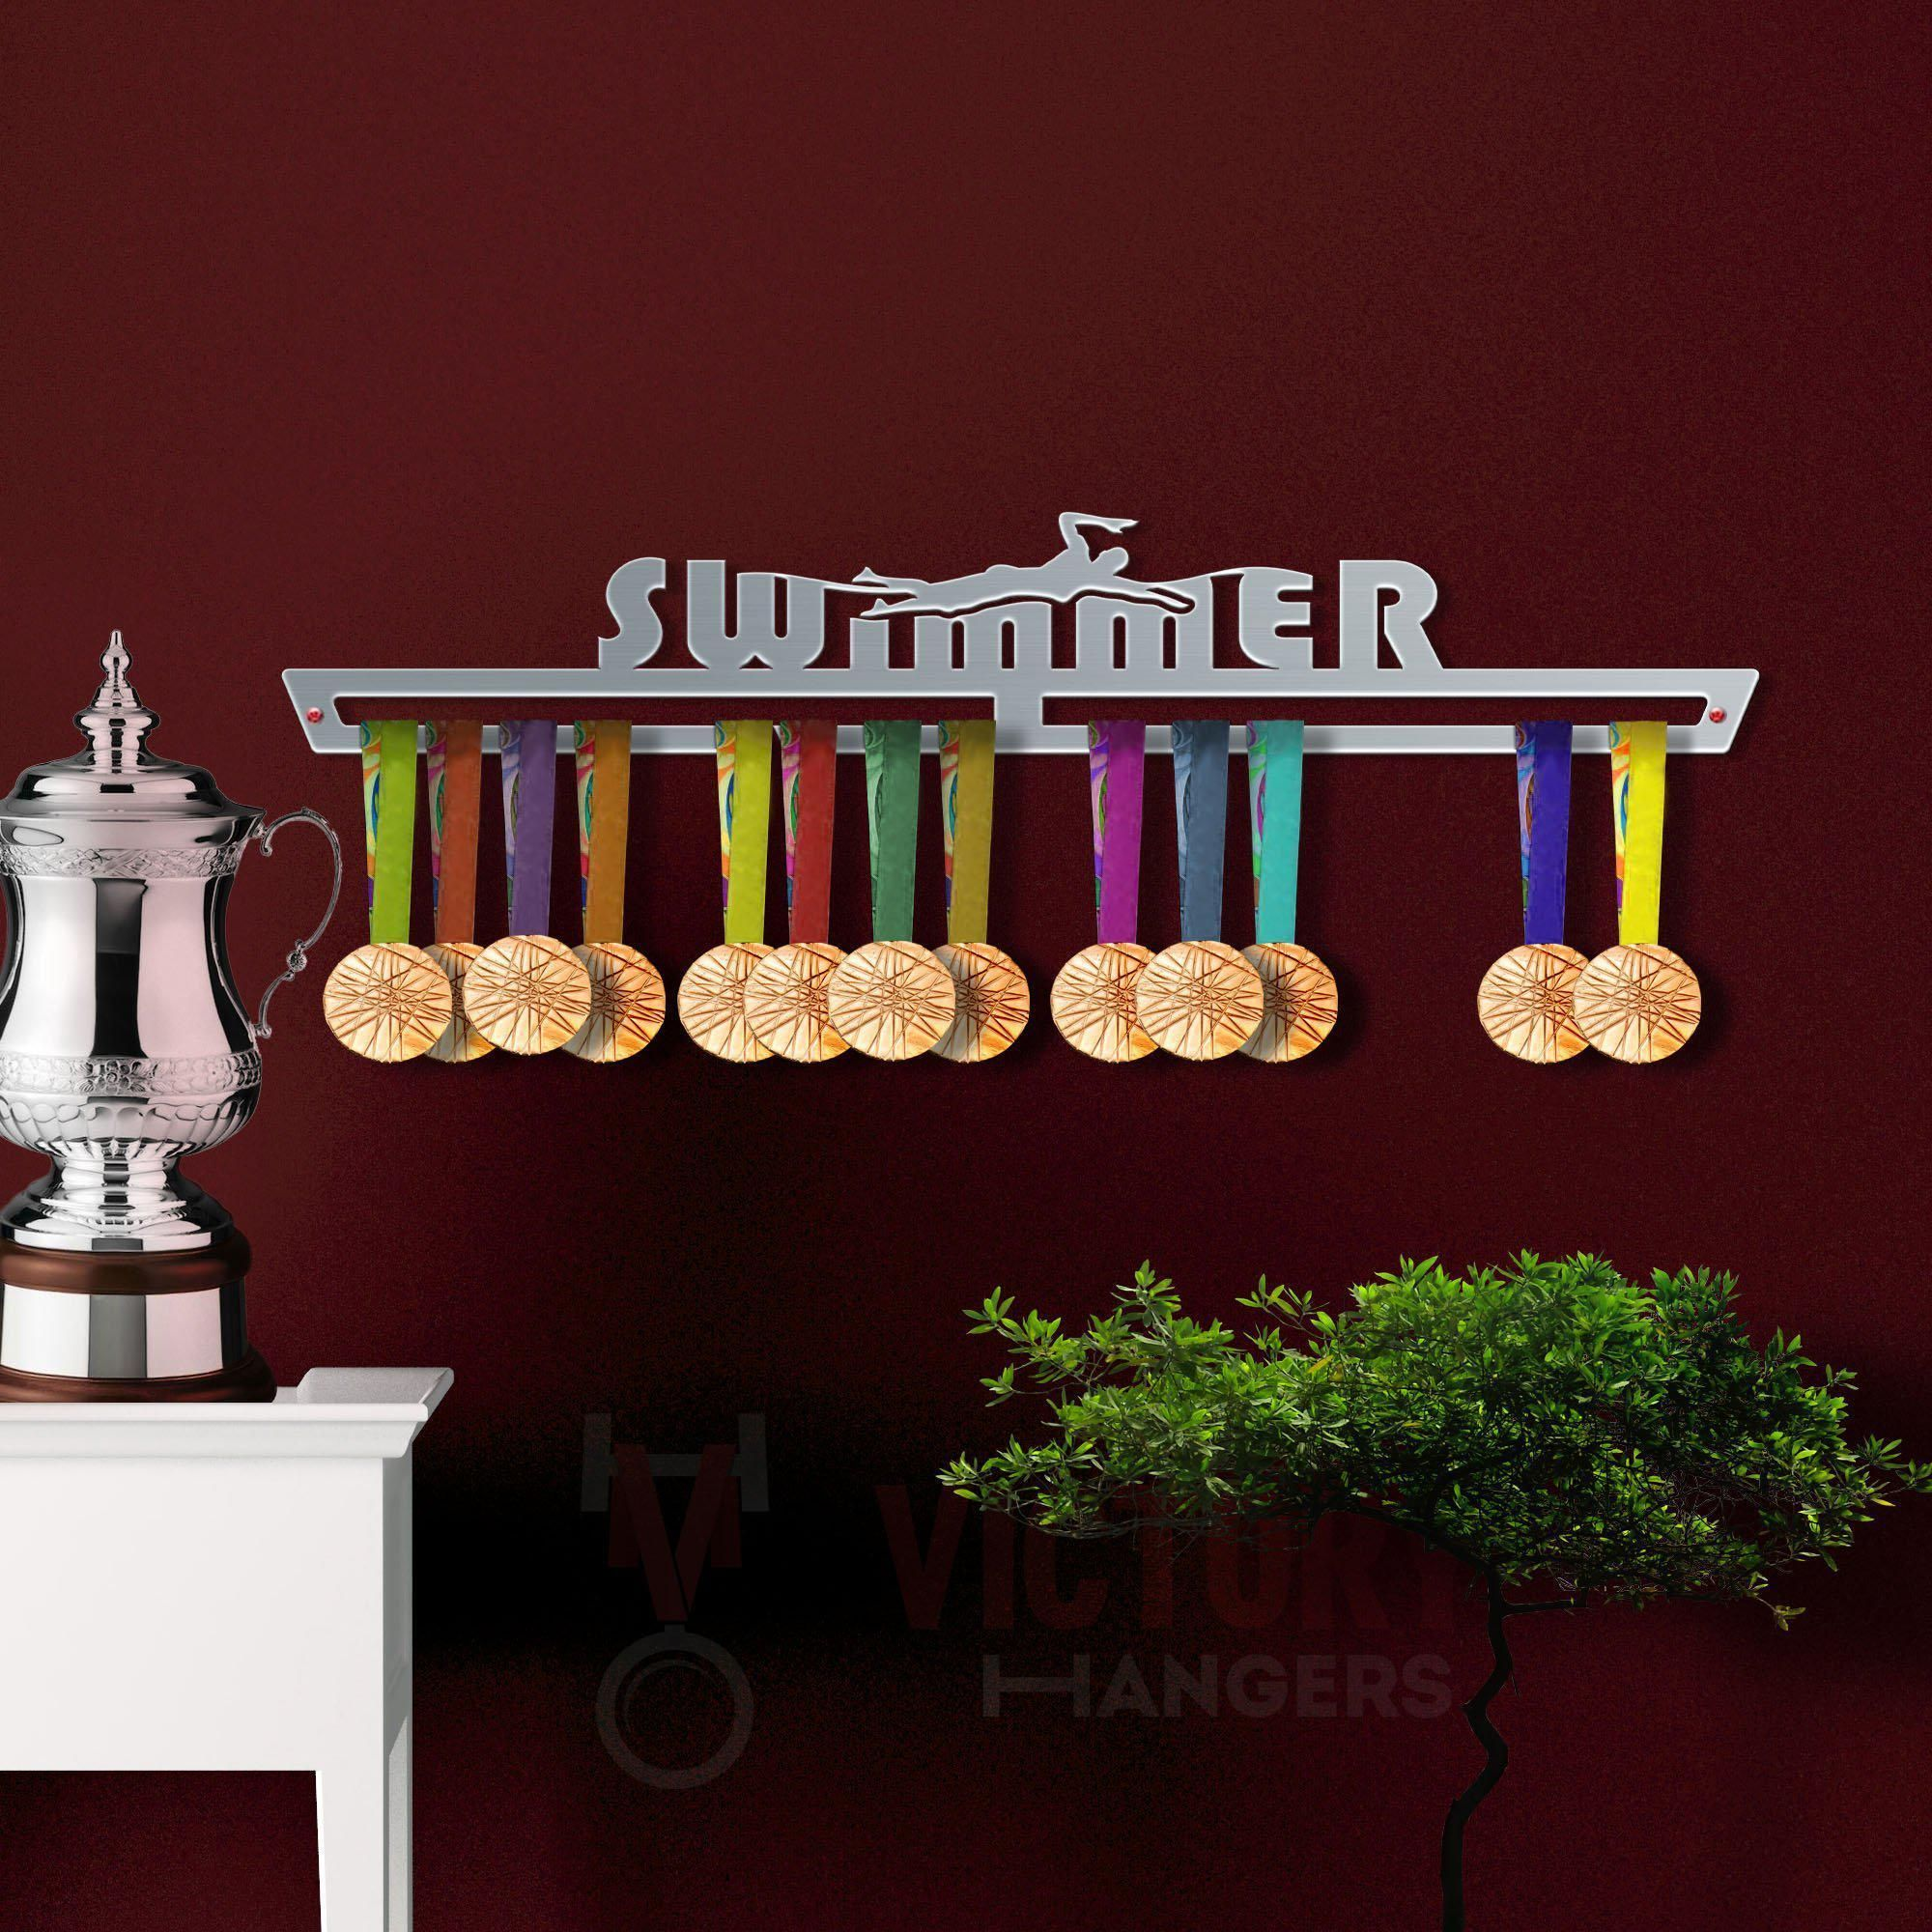 Stainless Steel Medal Display VICTORY HANGERS Challenge Accepted Medal Hanger Display V2 The Best Gift for Champions ! Motivational Medal Hanger by VictoryHangers